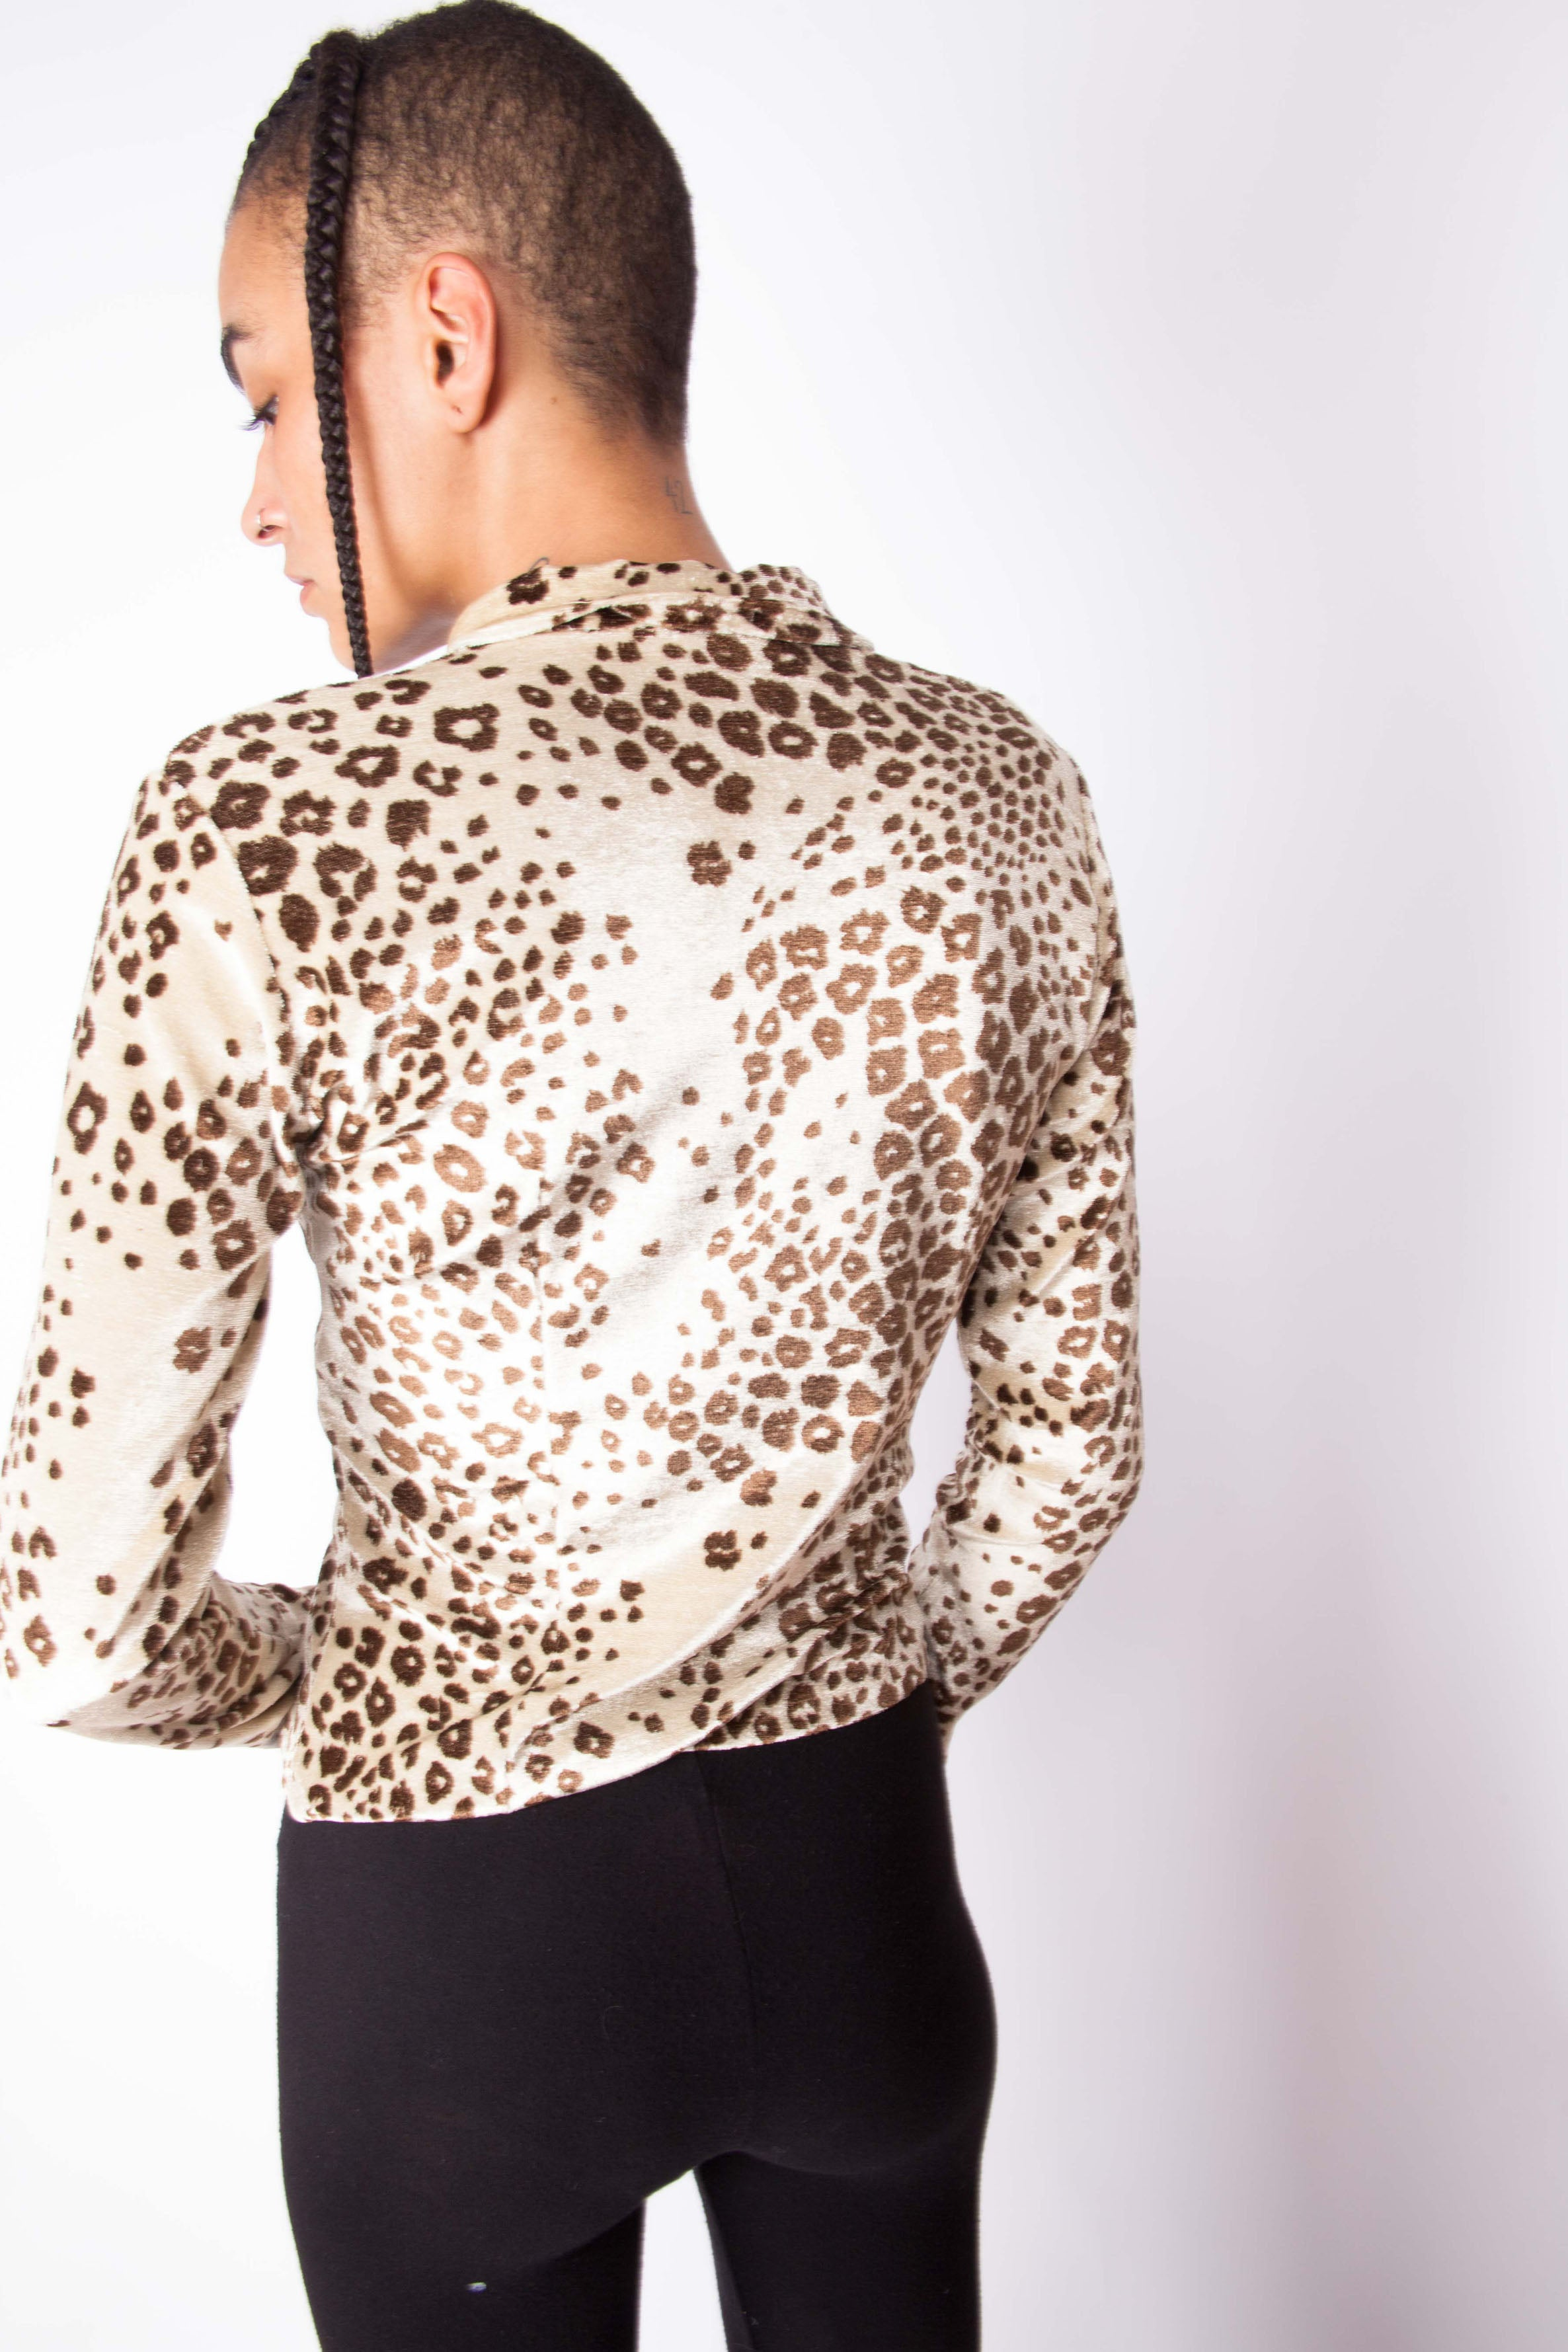 Vintage 90s Y2K Leopard Print Shirt – The Black Market